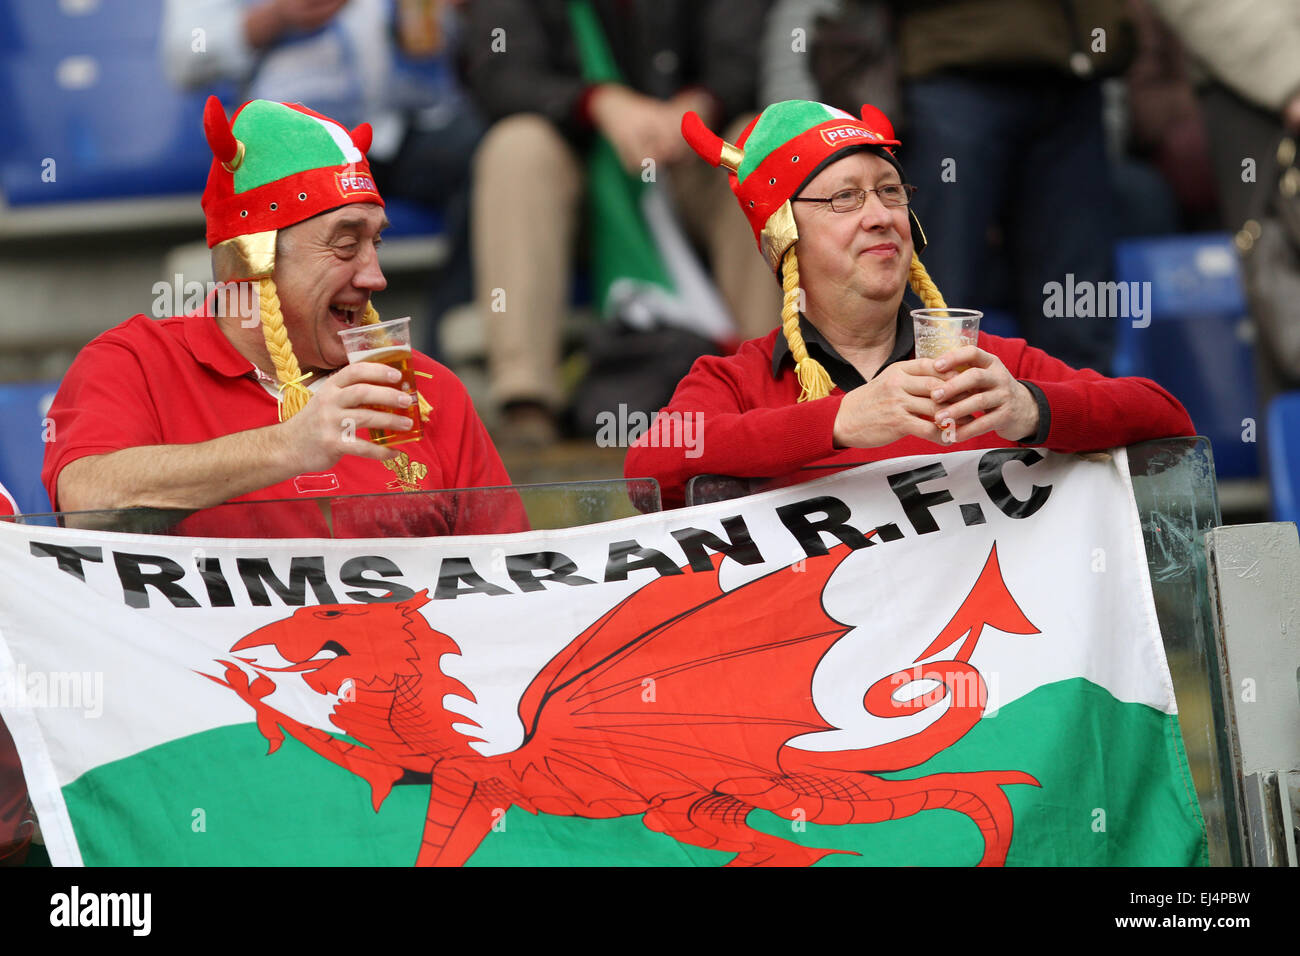 Rome, Italy. 21st March, 2015. Wales fans during the Six Nations international rugby union match between Italy and - Stock Image